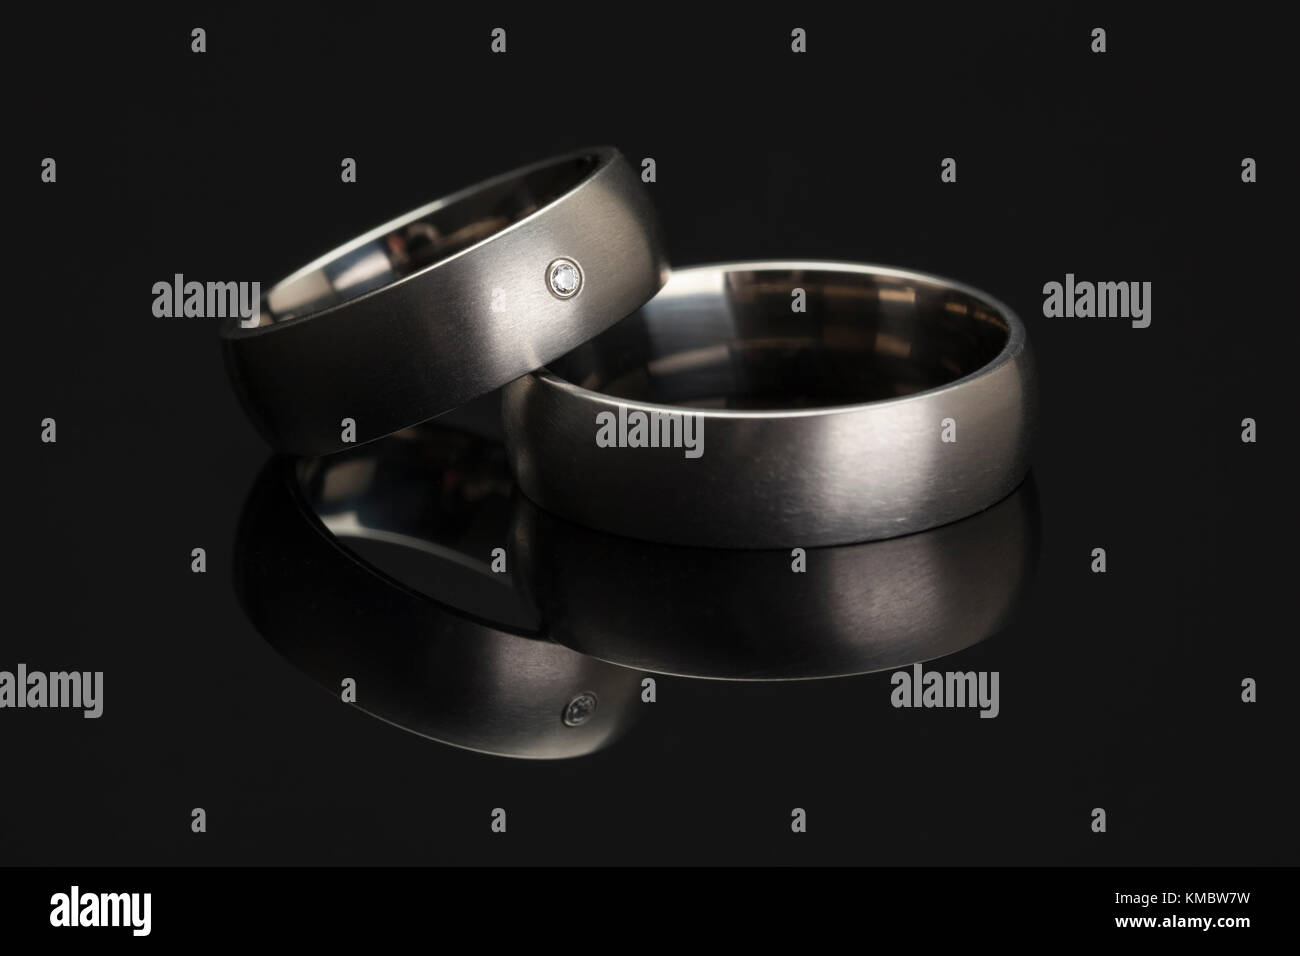 Platinum wedding rings on reflective black surface - Stock Image